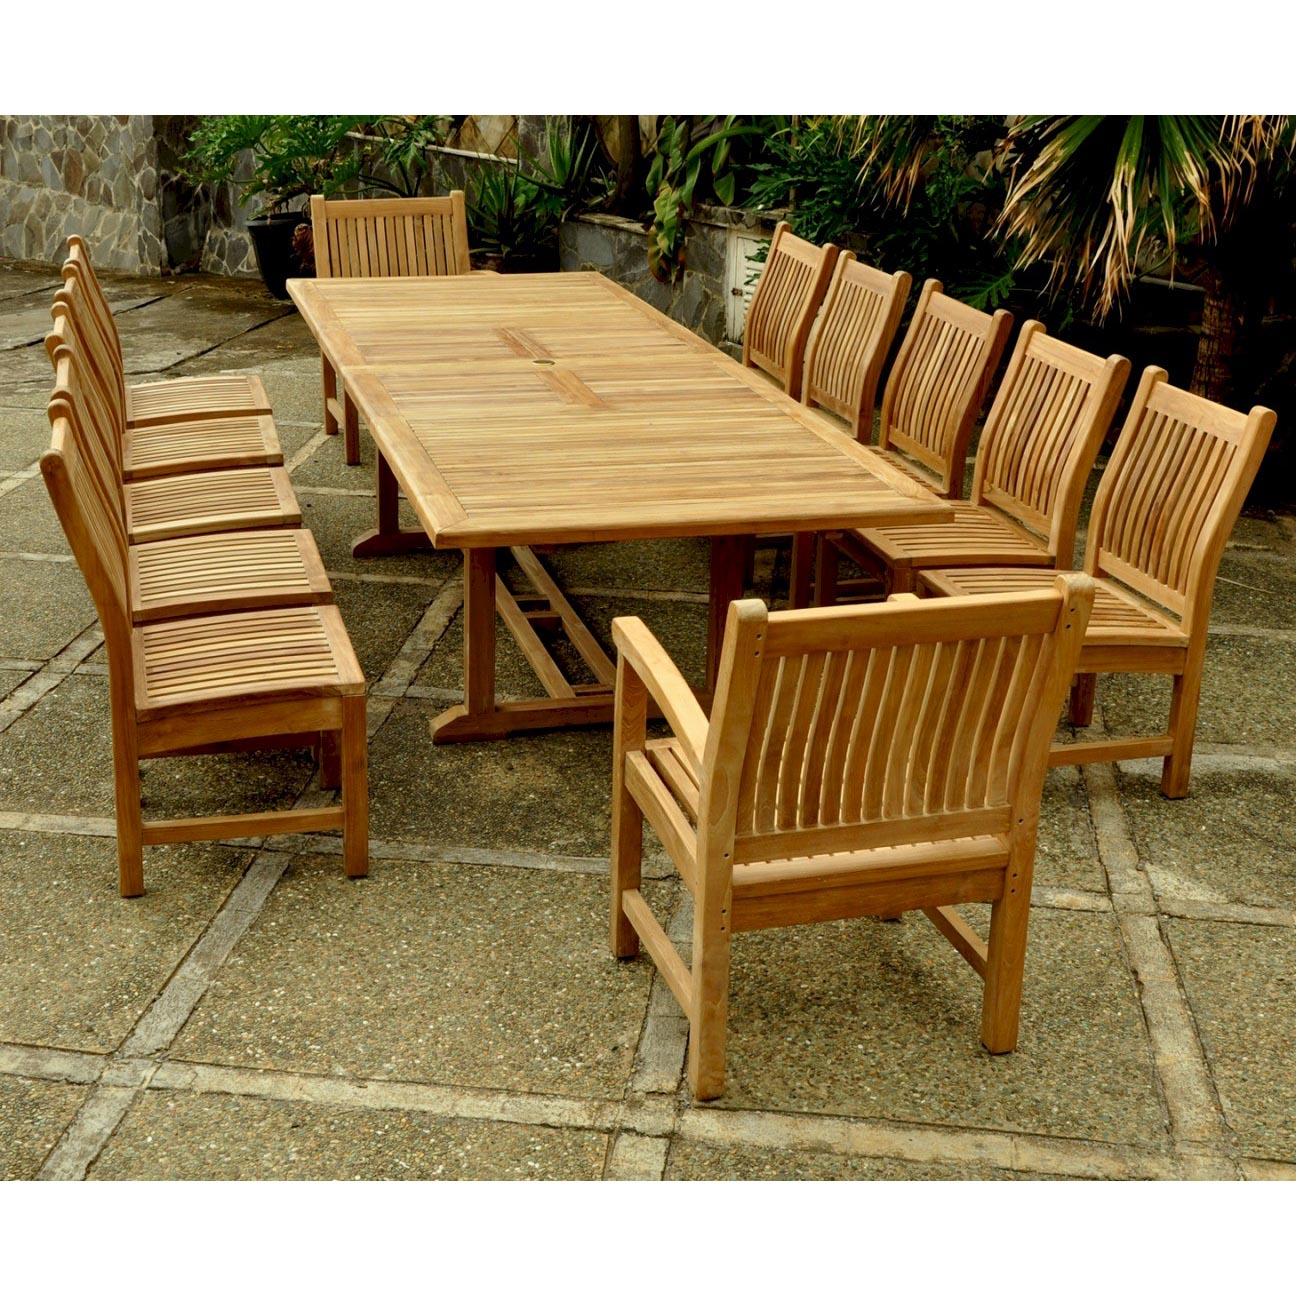 Purchase Teak Valencia Table Sahara Arm Chairs Dining Chairs Product Photo